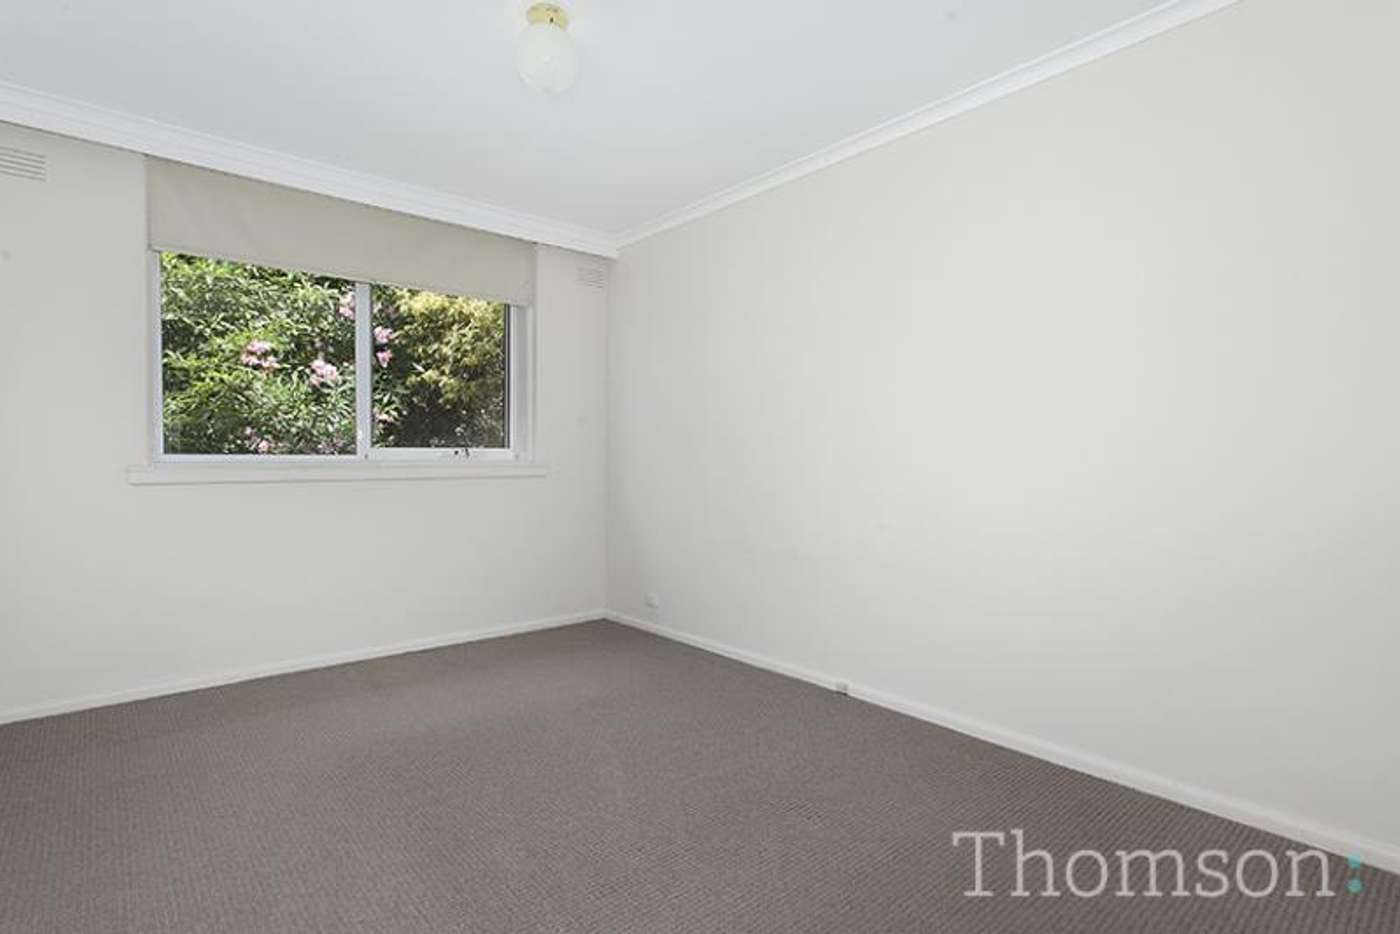 Main view of Homely apartment listing, 11/30 Wynnstay Road, Prahran VIC 3181